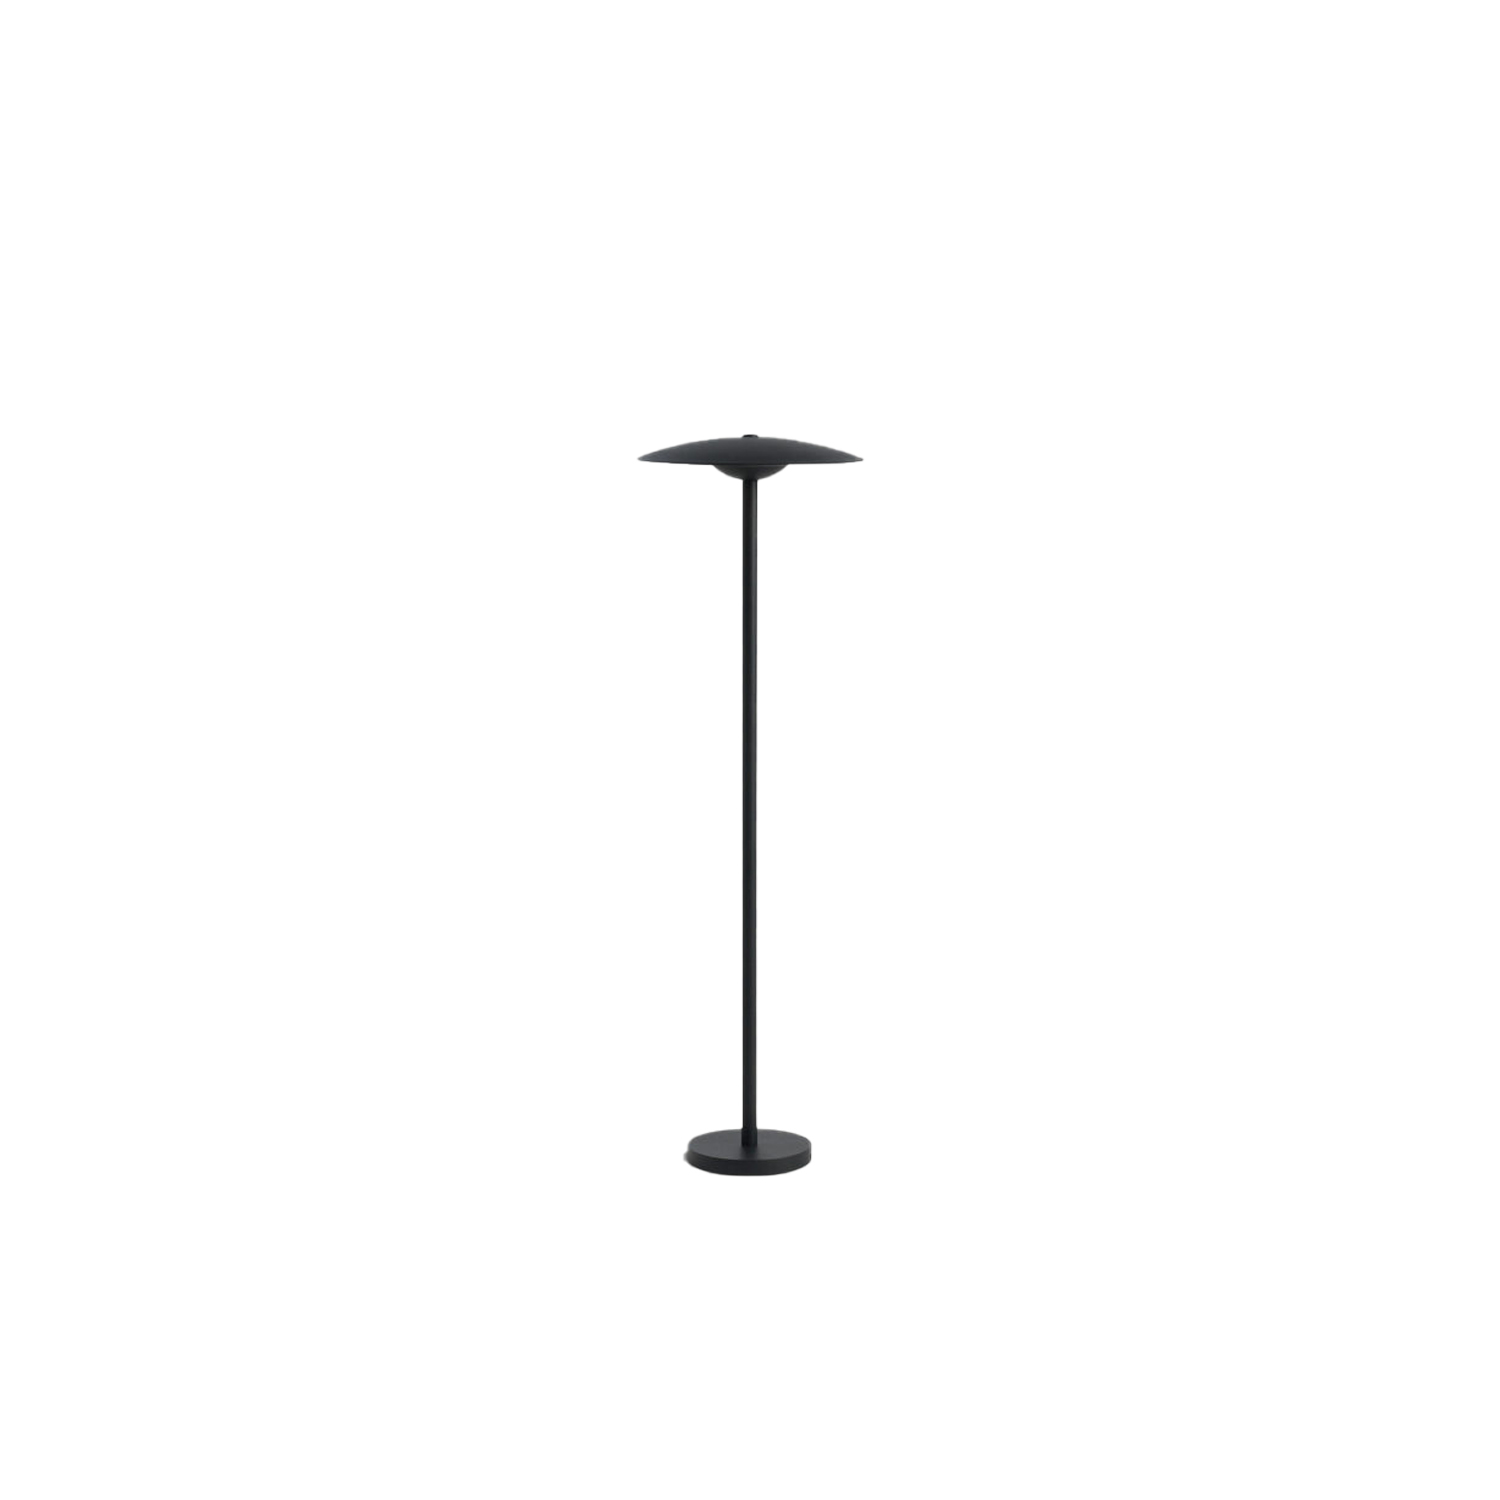 Ginger B 20/63 Outdoor Floor Lamp - The Ginger collection is moving outdoors, with wall sconces that can be installed individually or in a cluster, a new 15 cm sconce —perfect for passageways and small outdoor areas—, a lamppost and small floor lamps.  This year, the collection features new bollard lamps, raised by means of a post that can be buried in dirt or gravel, perfect for illuminating pathways, gardens, terraces, and walls, and blending nicely with vegetation. | Matter of Stuff